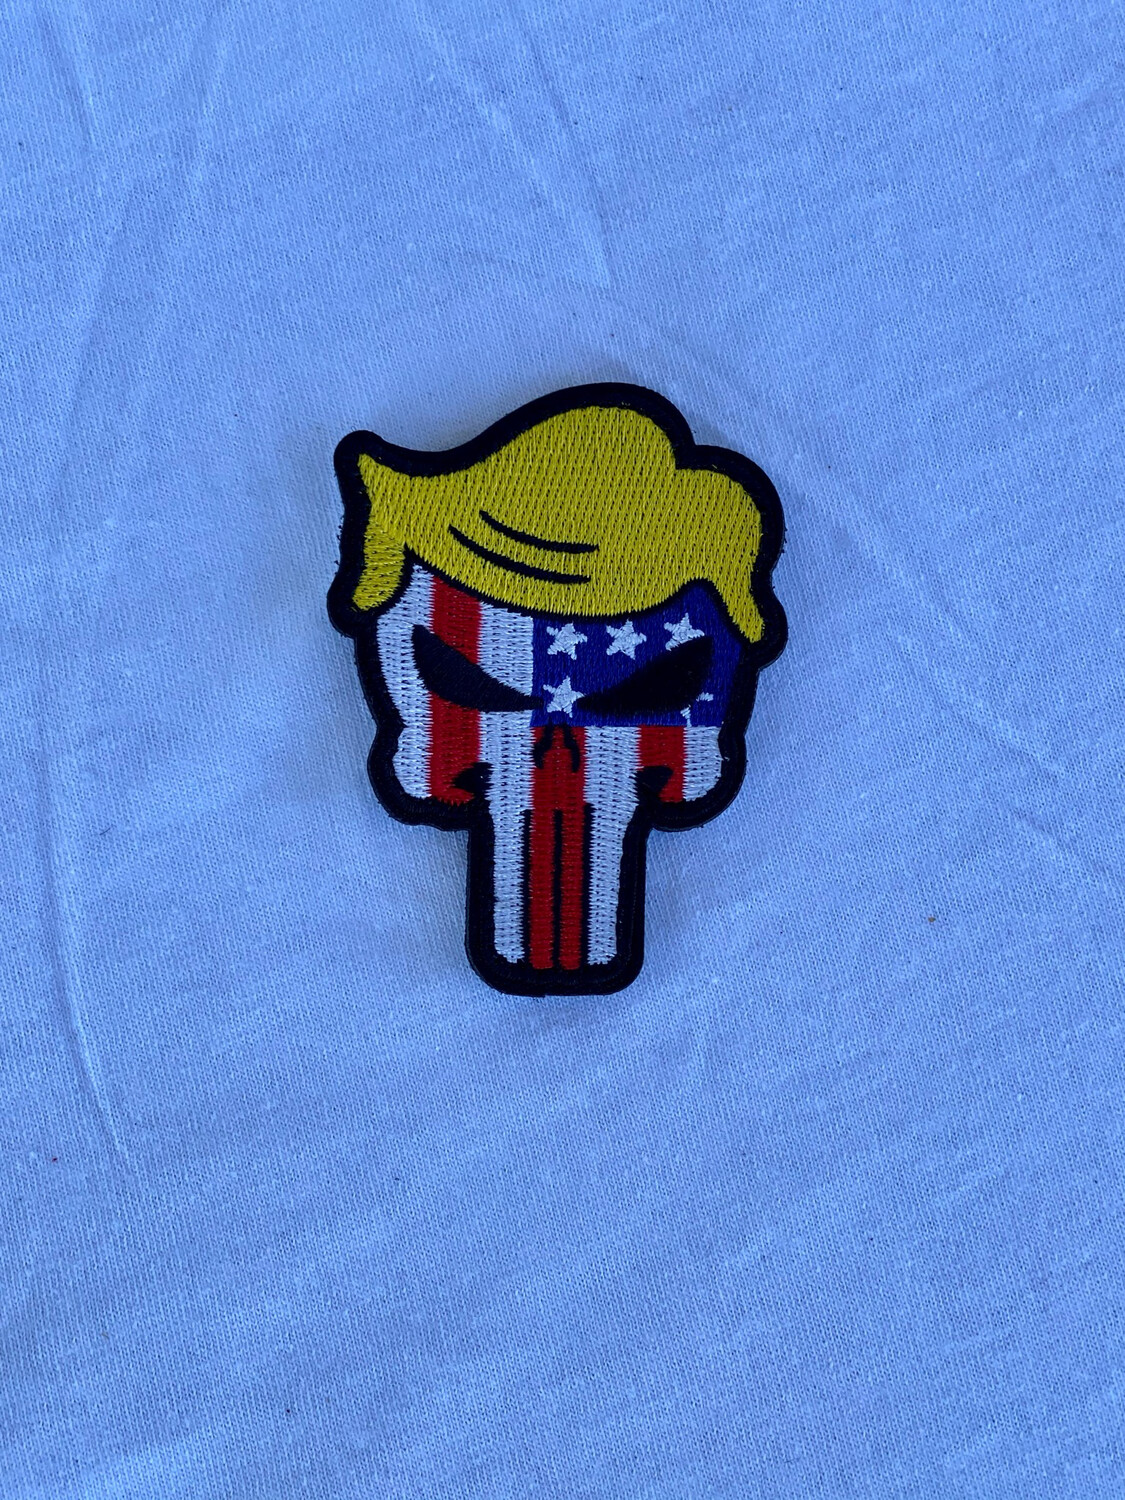 Trump Patriotic Punisher Patch